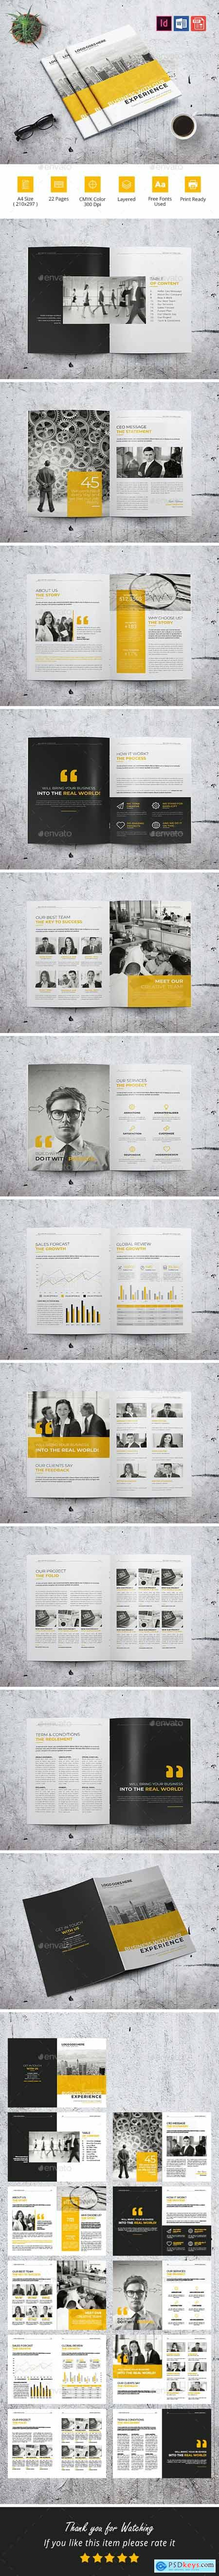 Clean Business Proposal 21280656